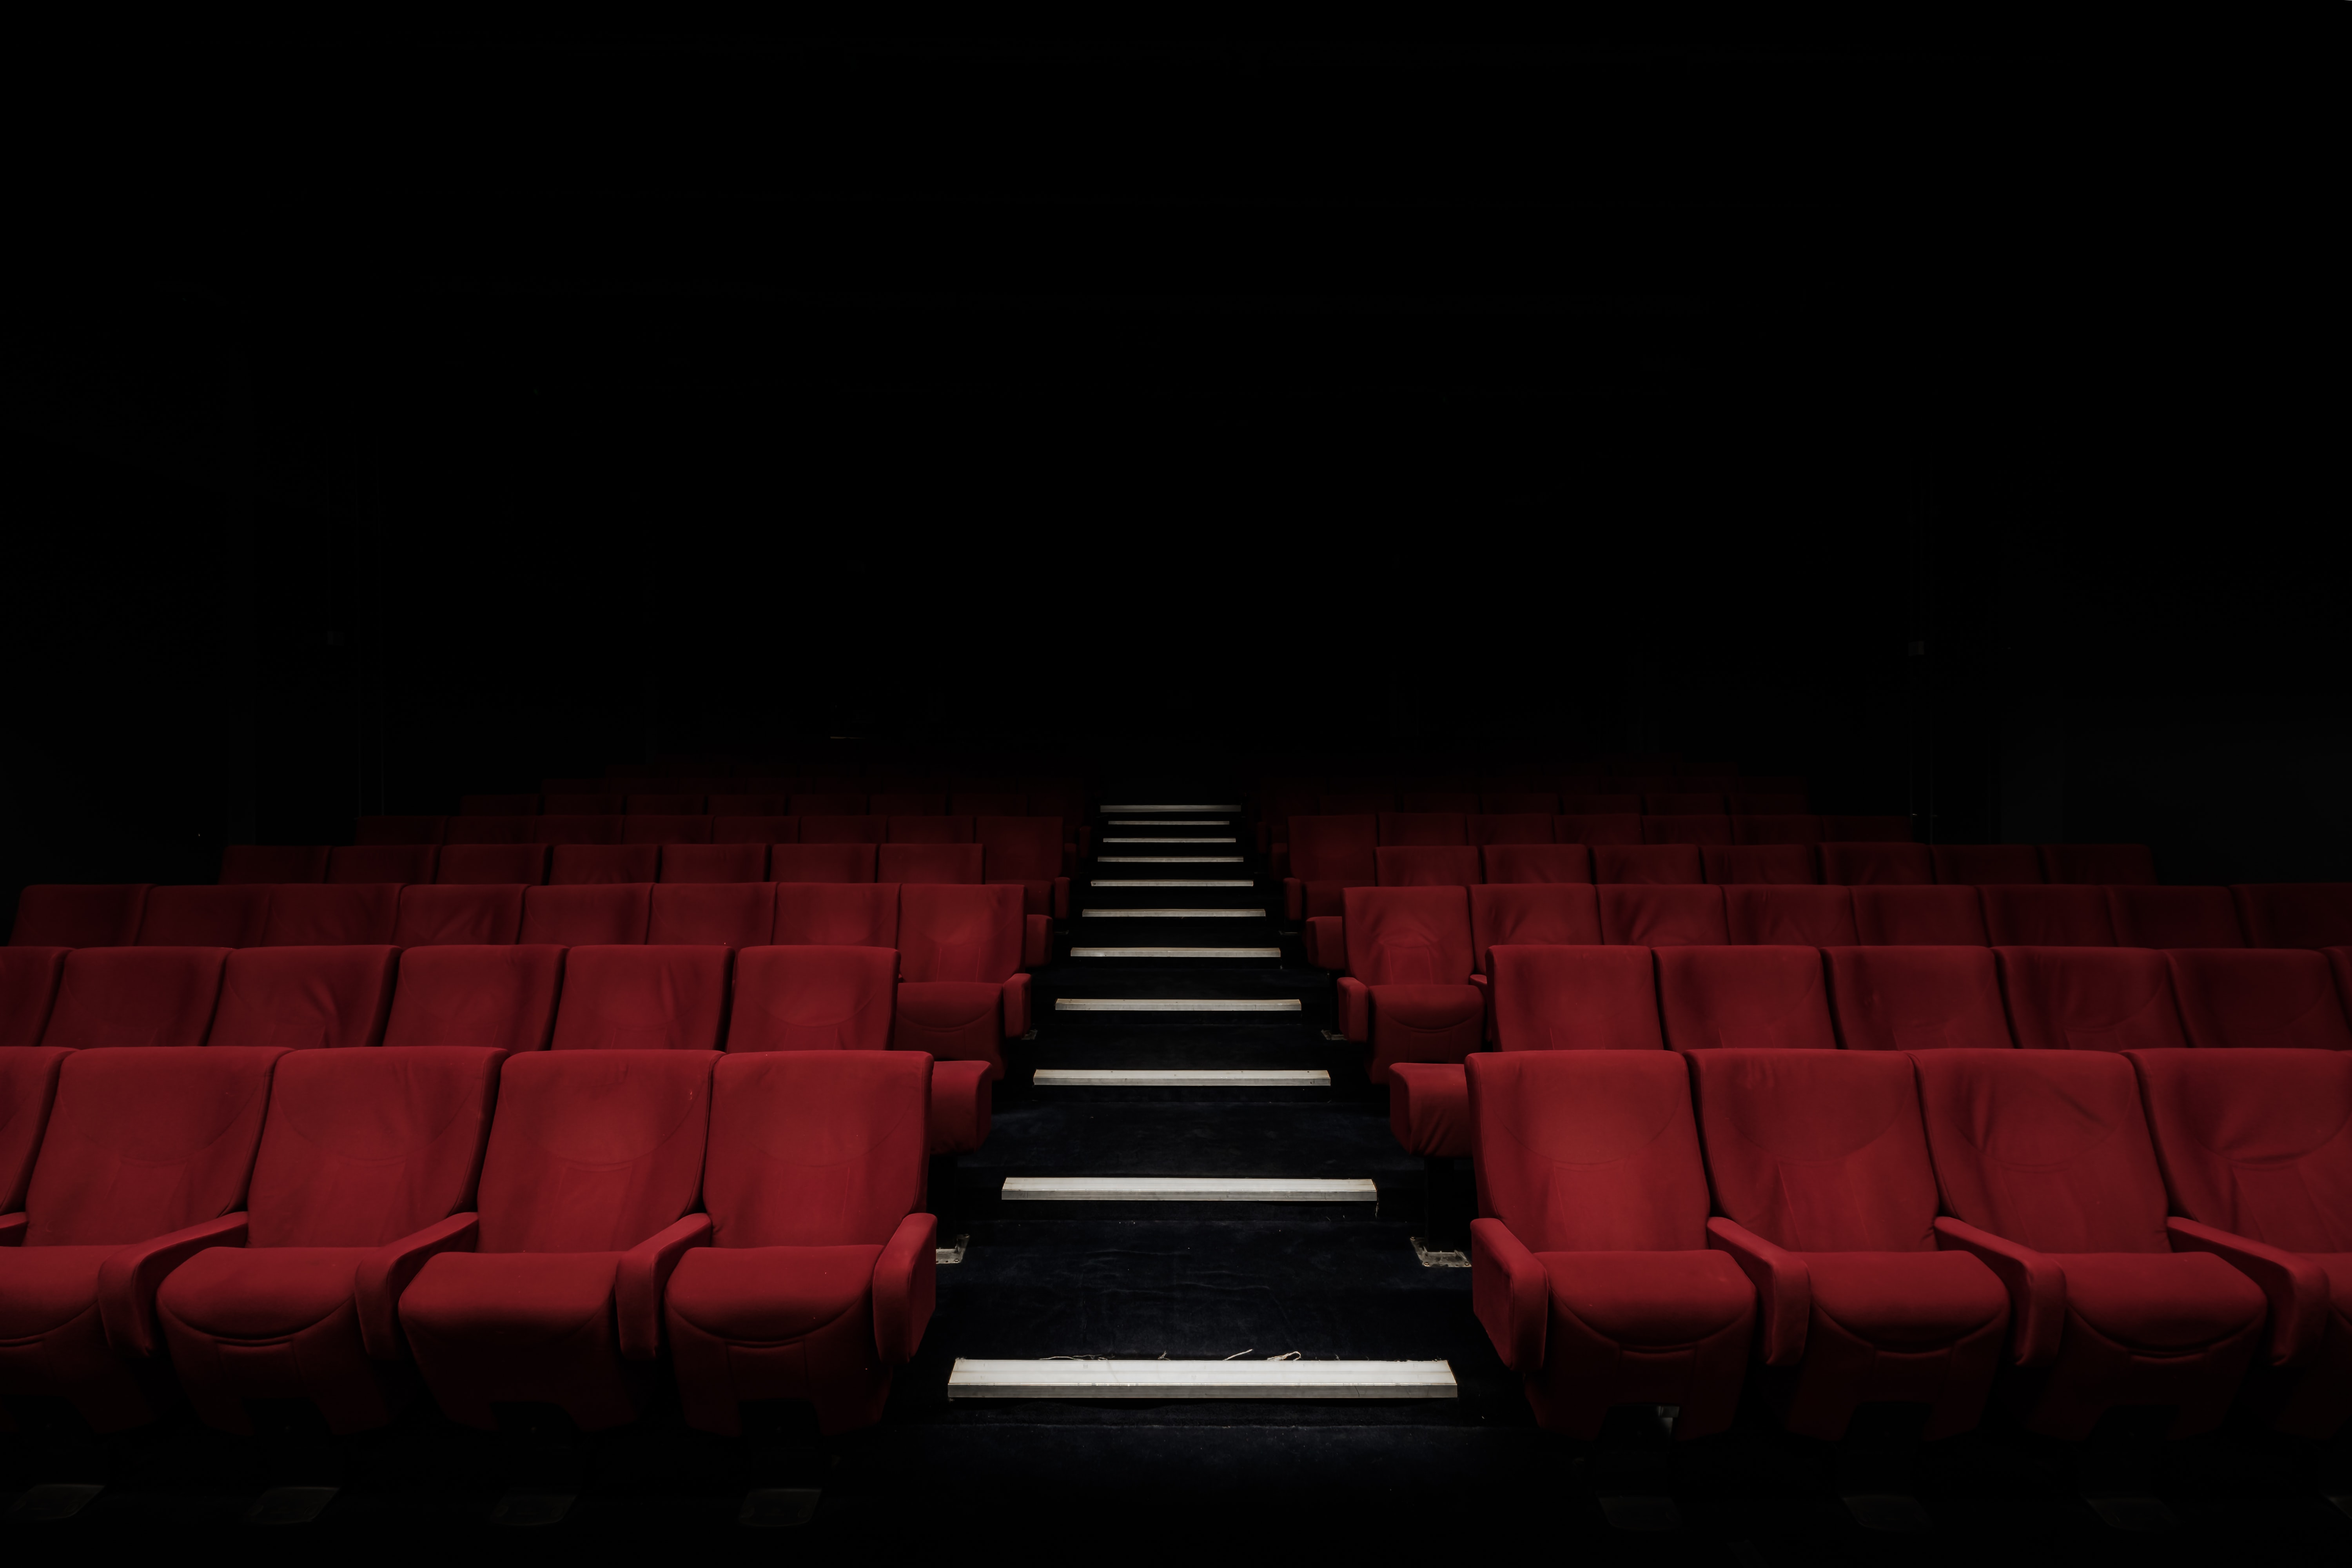 school theater seats red chairs black stairs